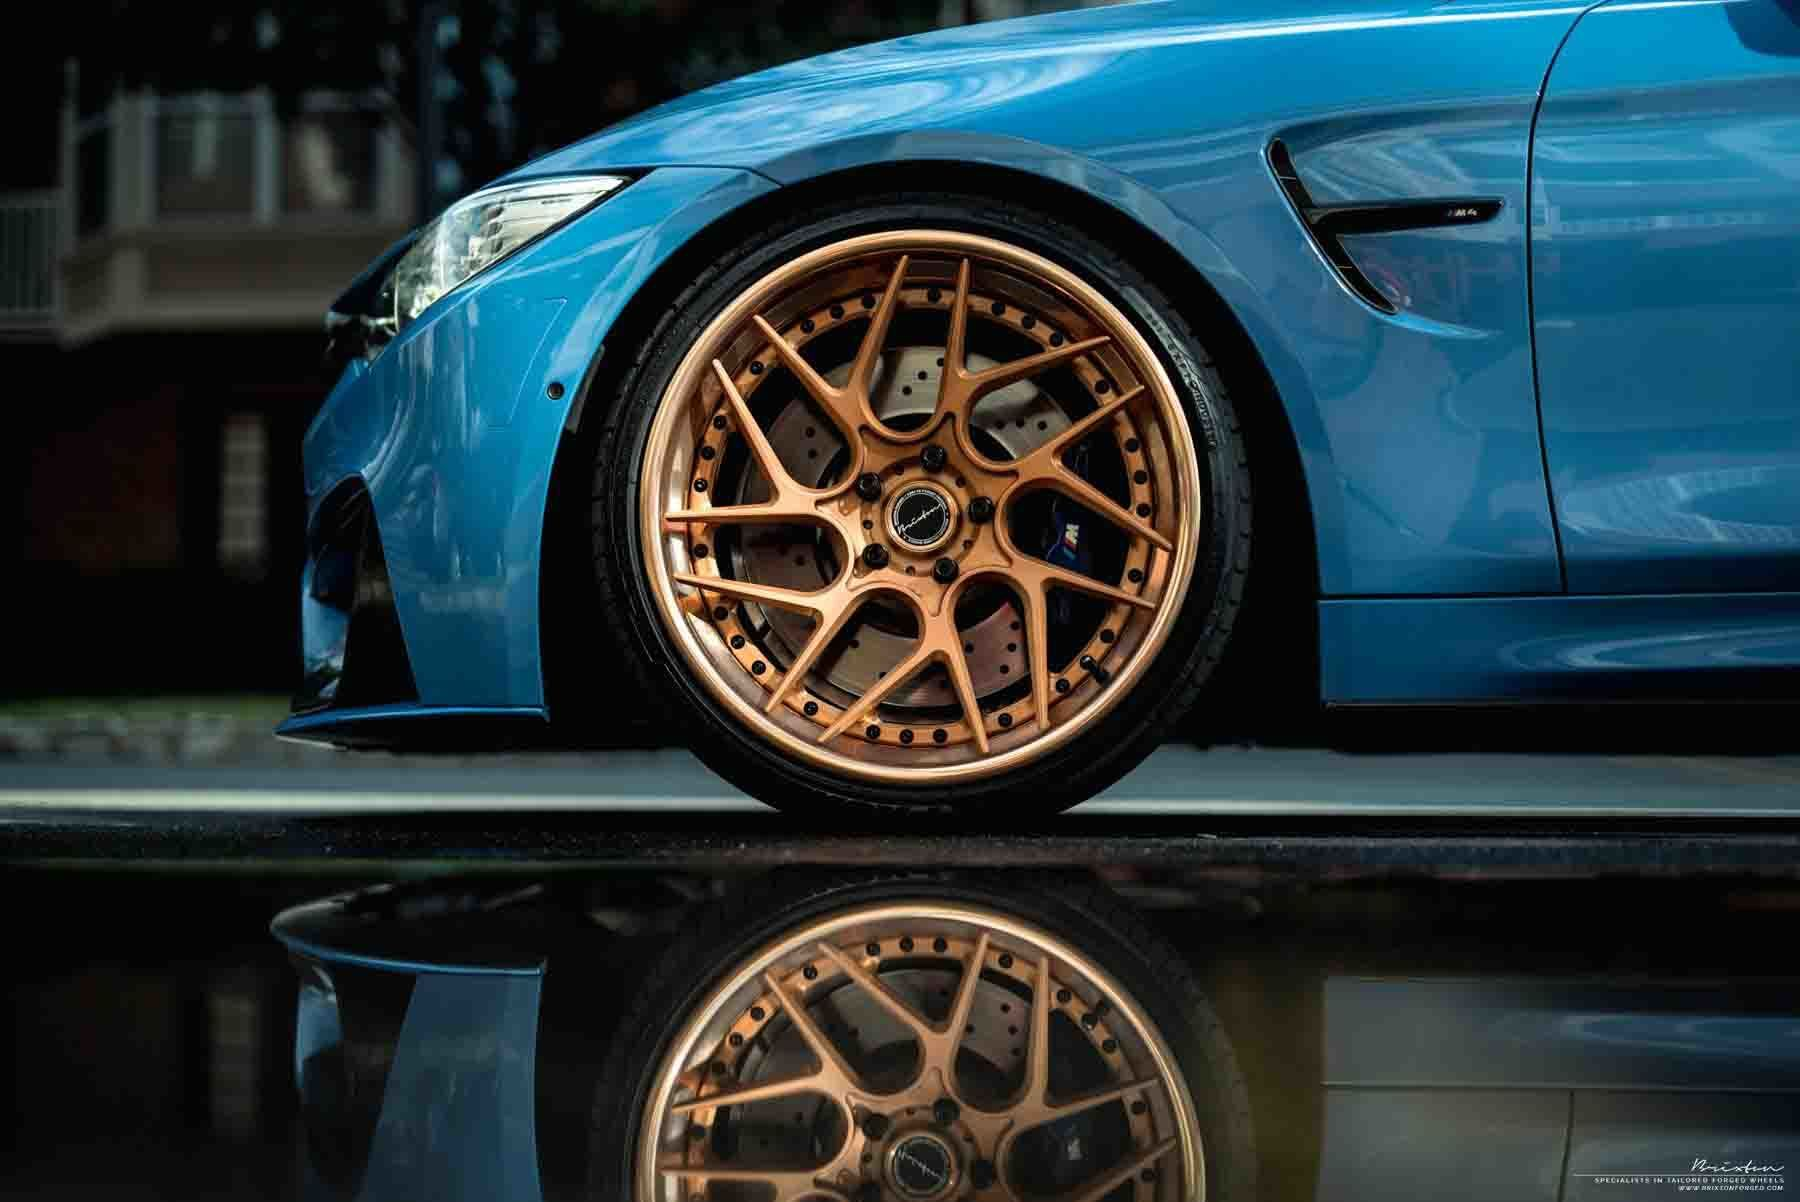 images-products-1-2575-232974863-yas-marina-blue-bmw-m4-f82-brixton-forged-cm7-targa-series-forged-concave-wheels-rose-gold-5-180.jpg